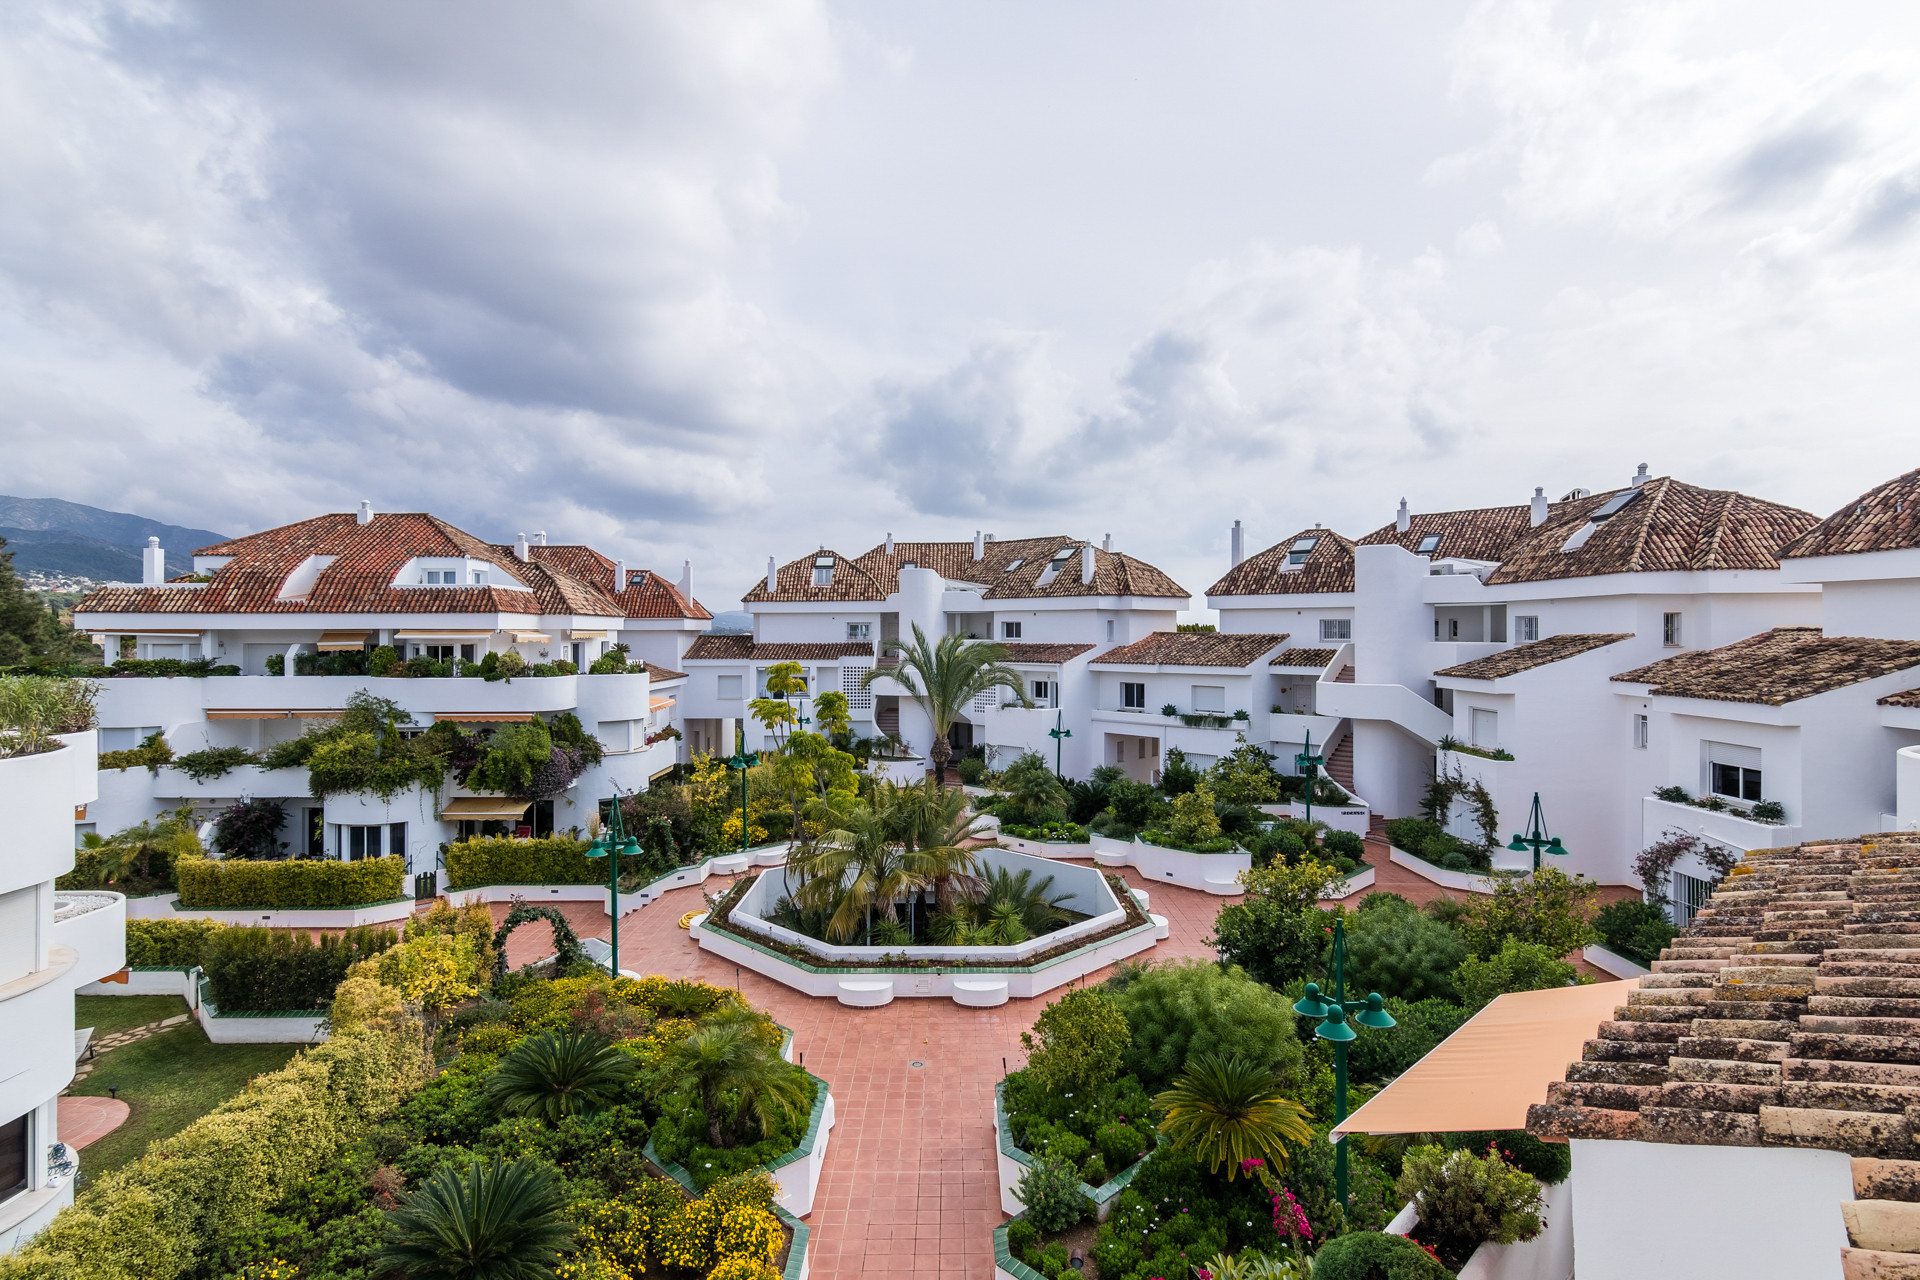 Golden Mile Exclusive listing: 260m2 Duplex penthouse with sea views in Marbella Golden Mile